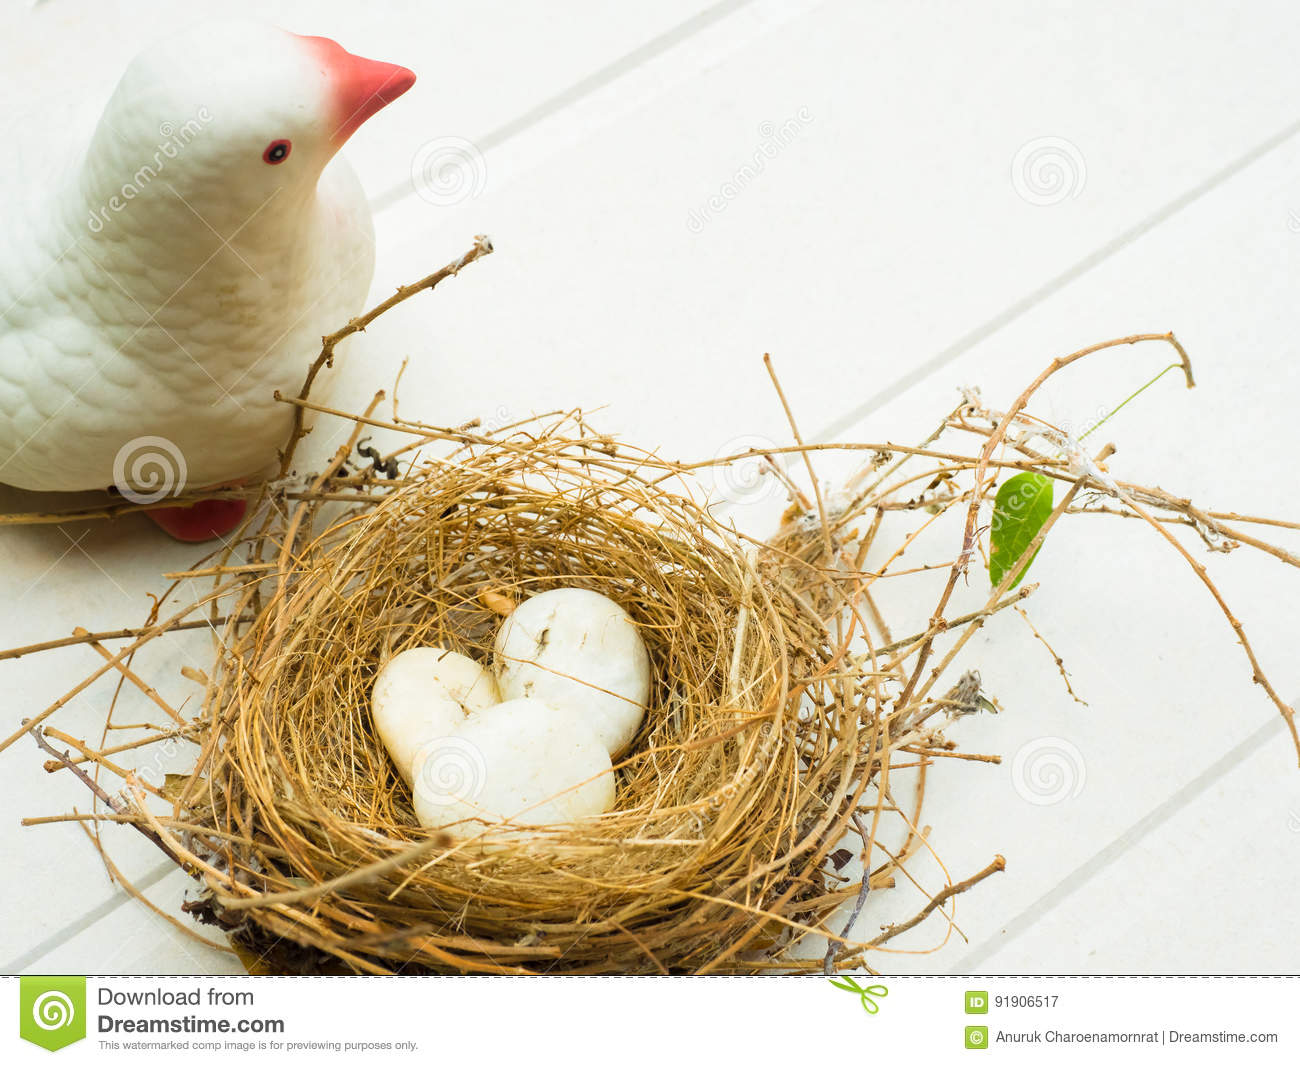 singles in birdsnest Birdsnest's best free dating site 100% free online dating for birdsnest singles at mingle2com our free personal ads are full of single women and men in birdsnest looking for serious relationships, a little online flirtation, or new friends to go out with.